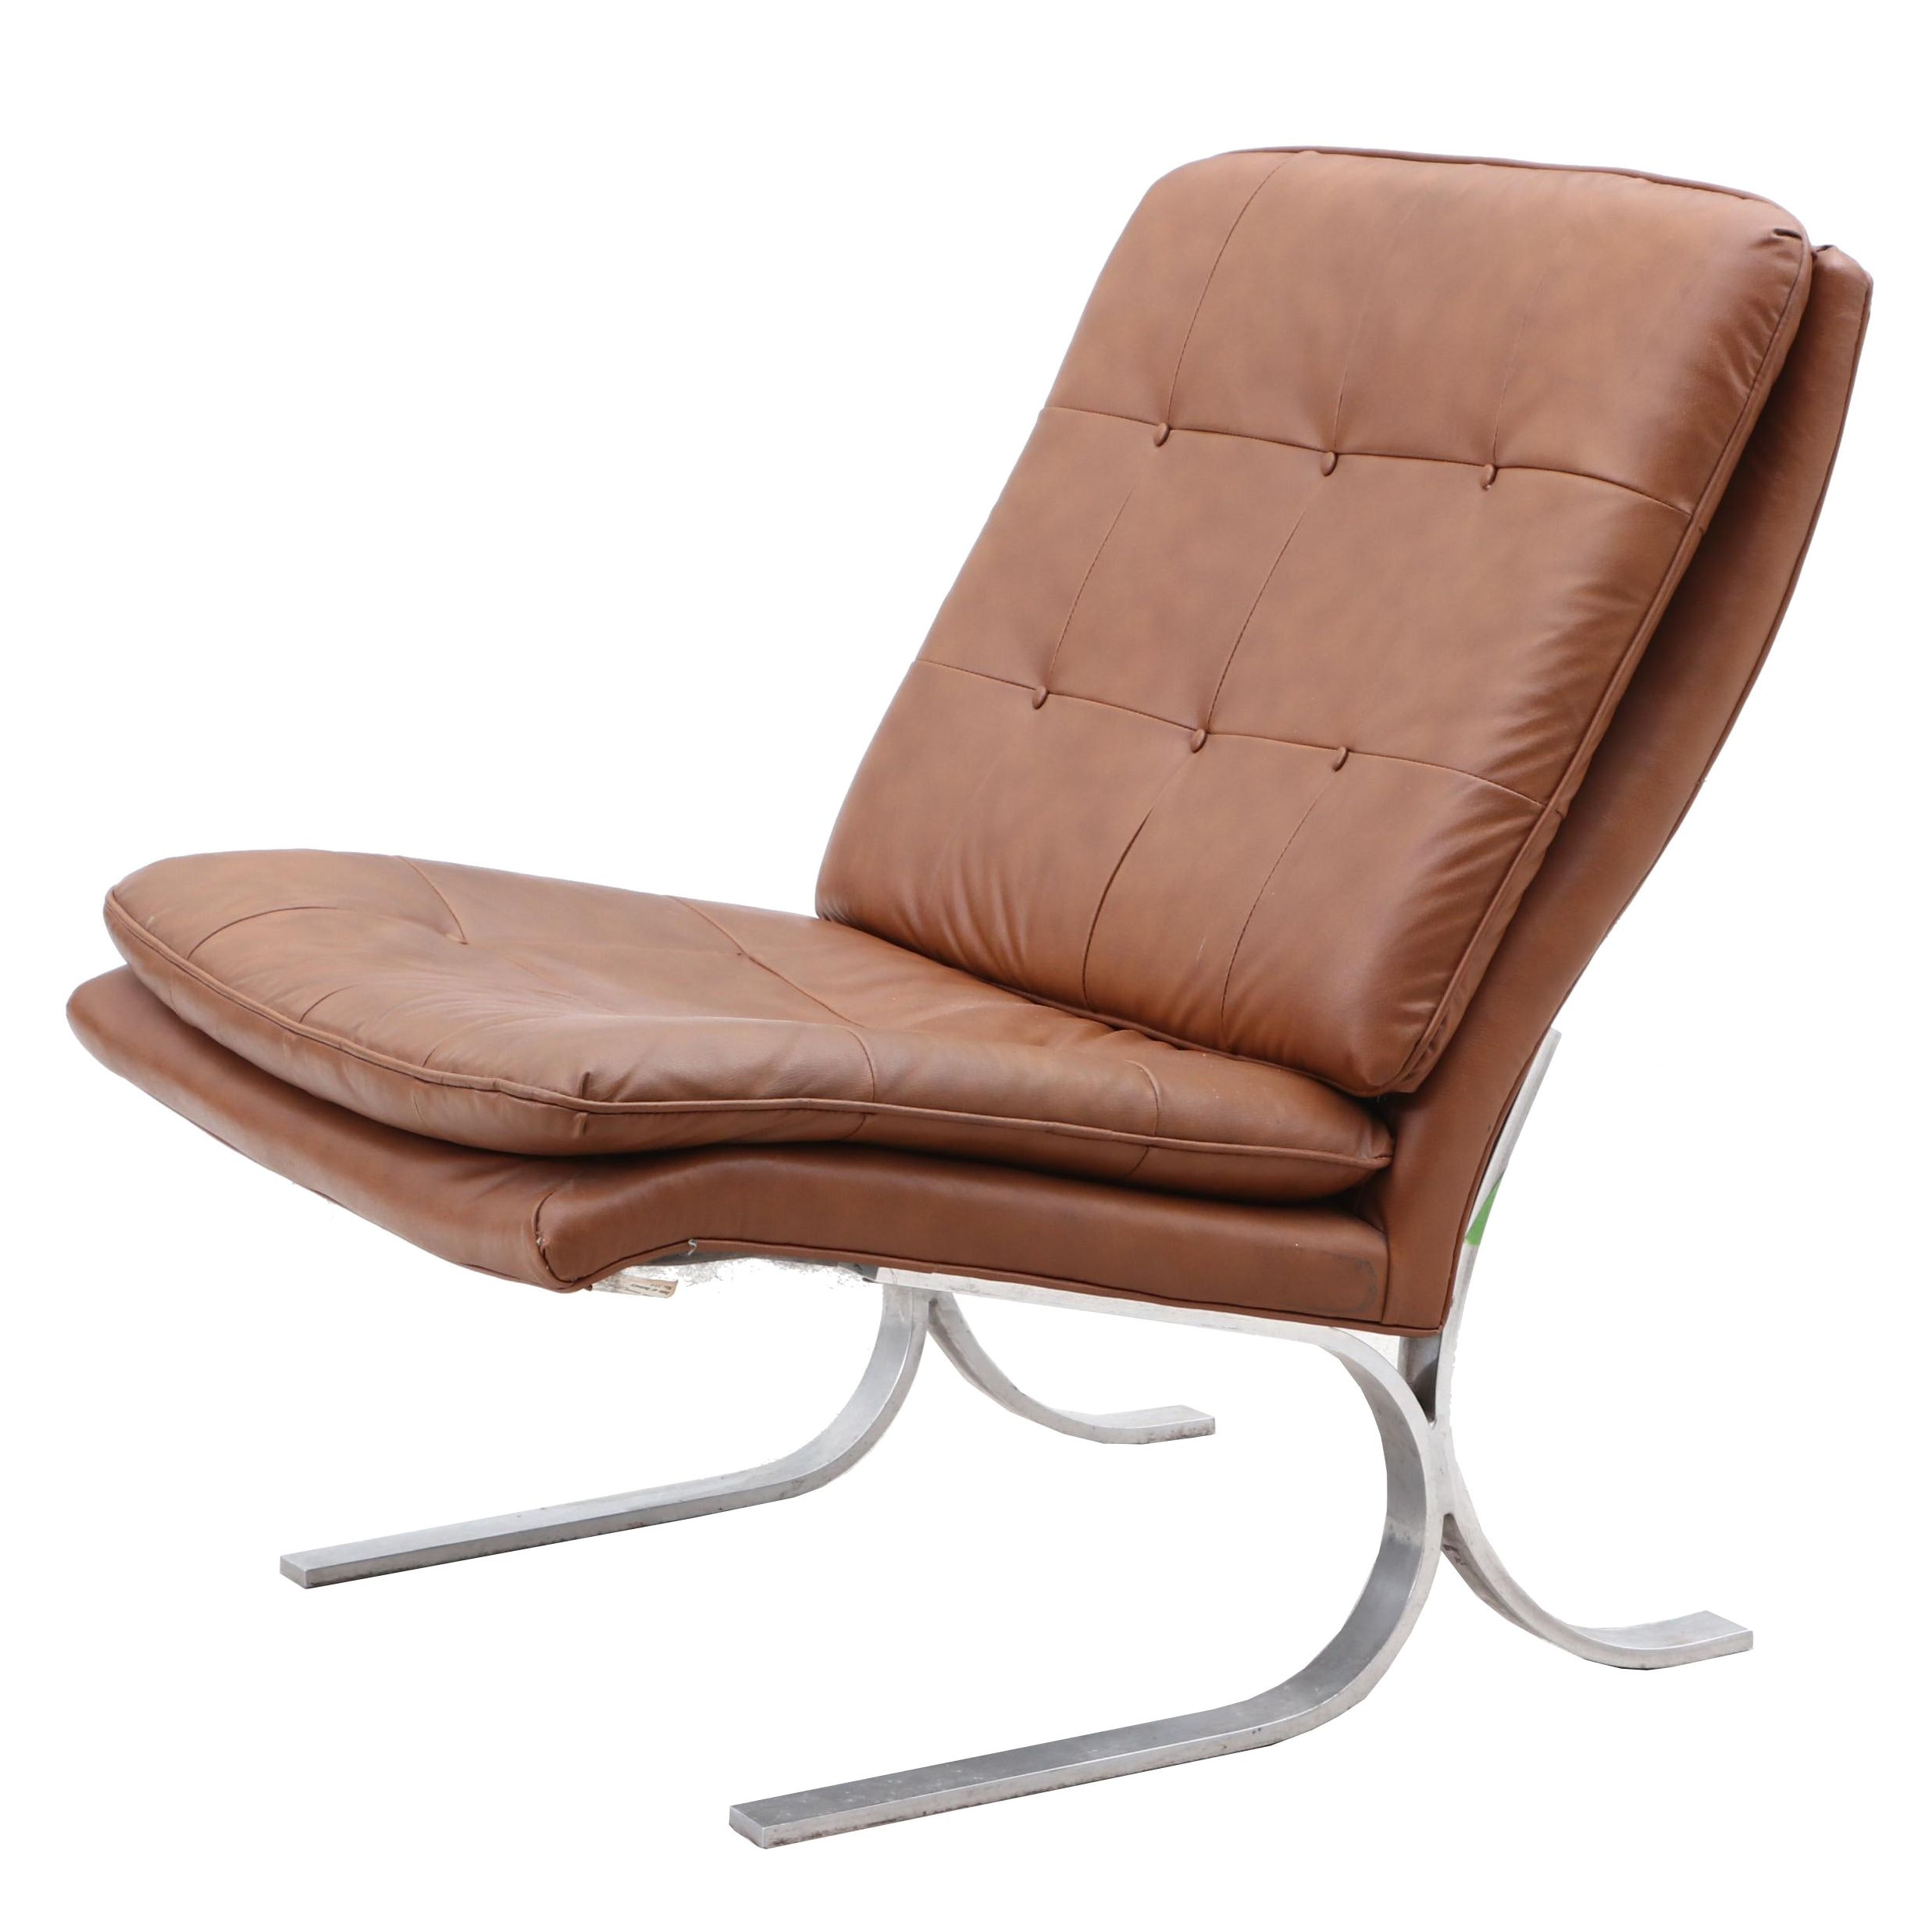 Mid Century Modern Style Sam Moore Barcelona Lounger, Contemporary